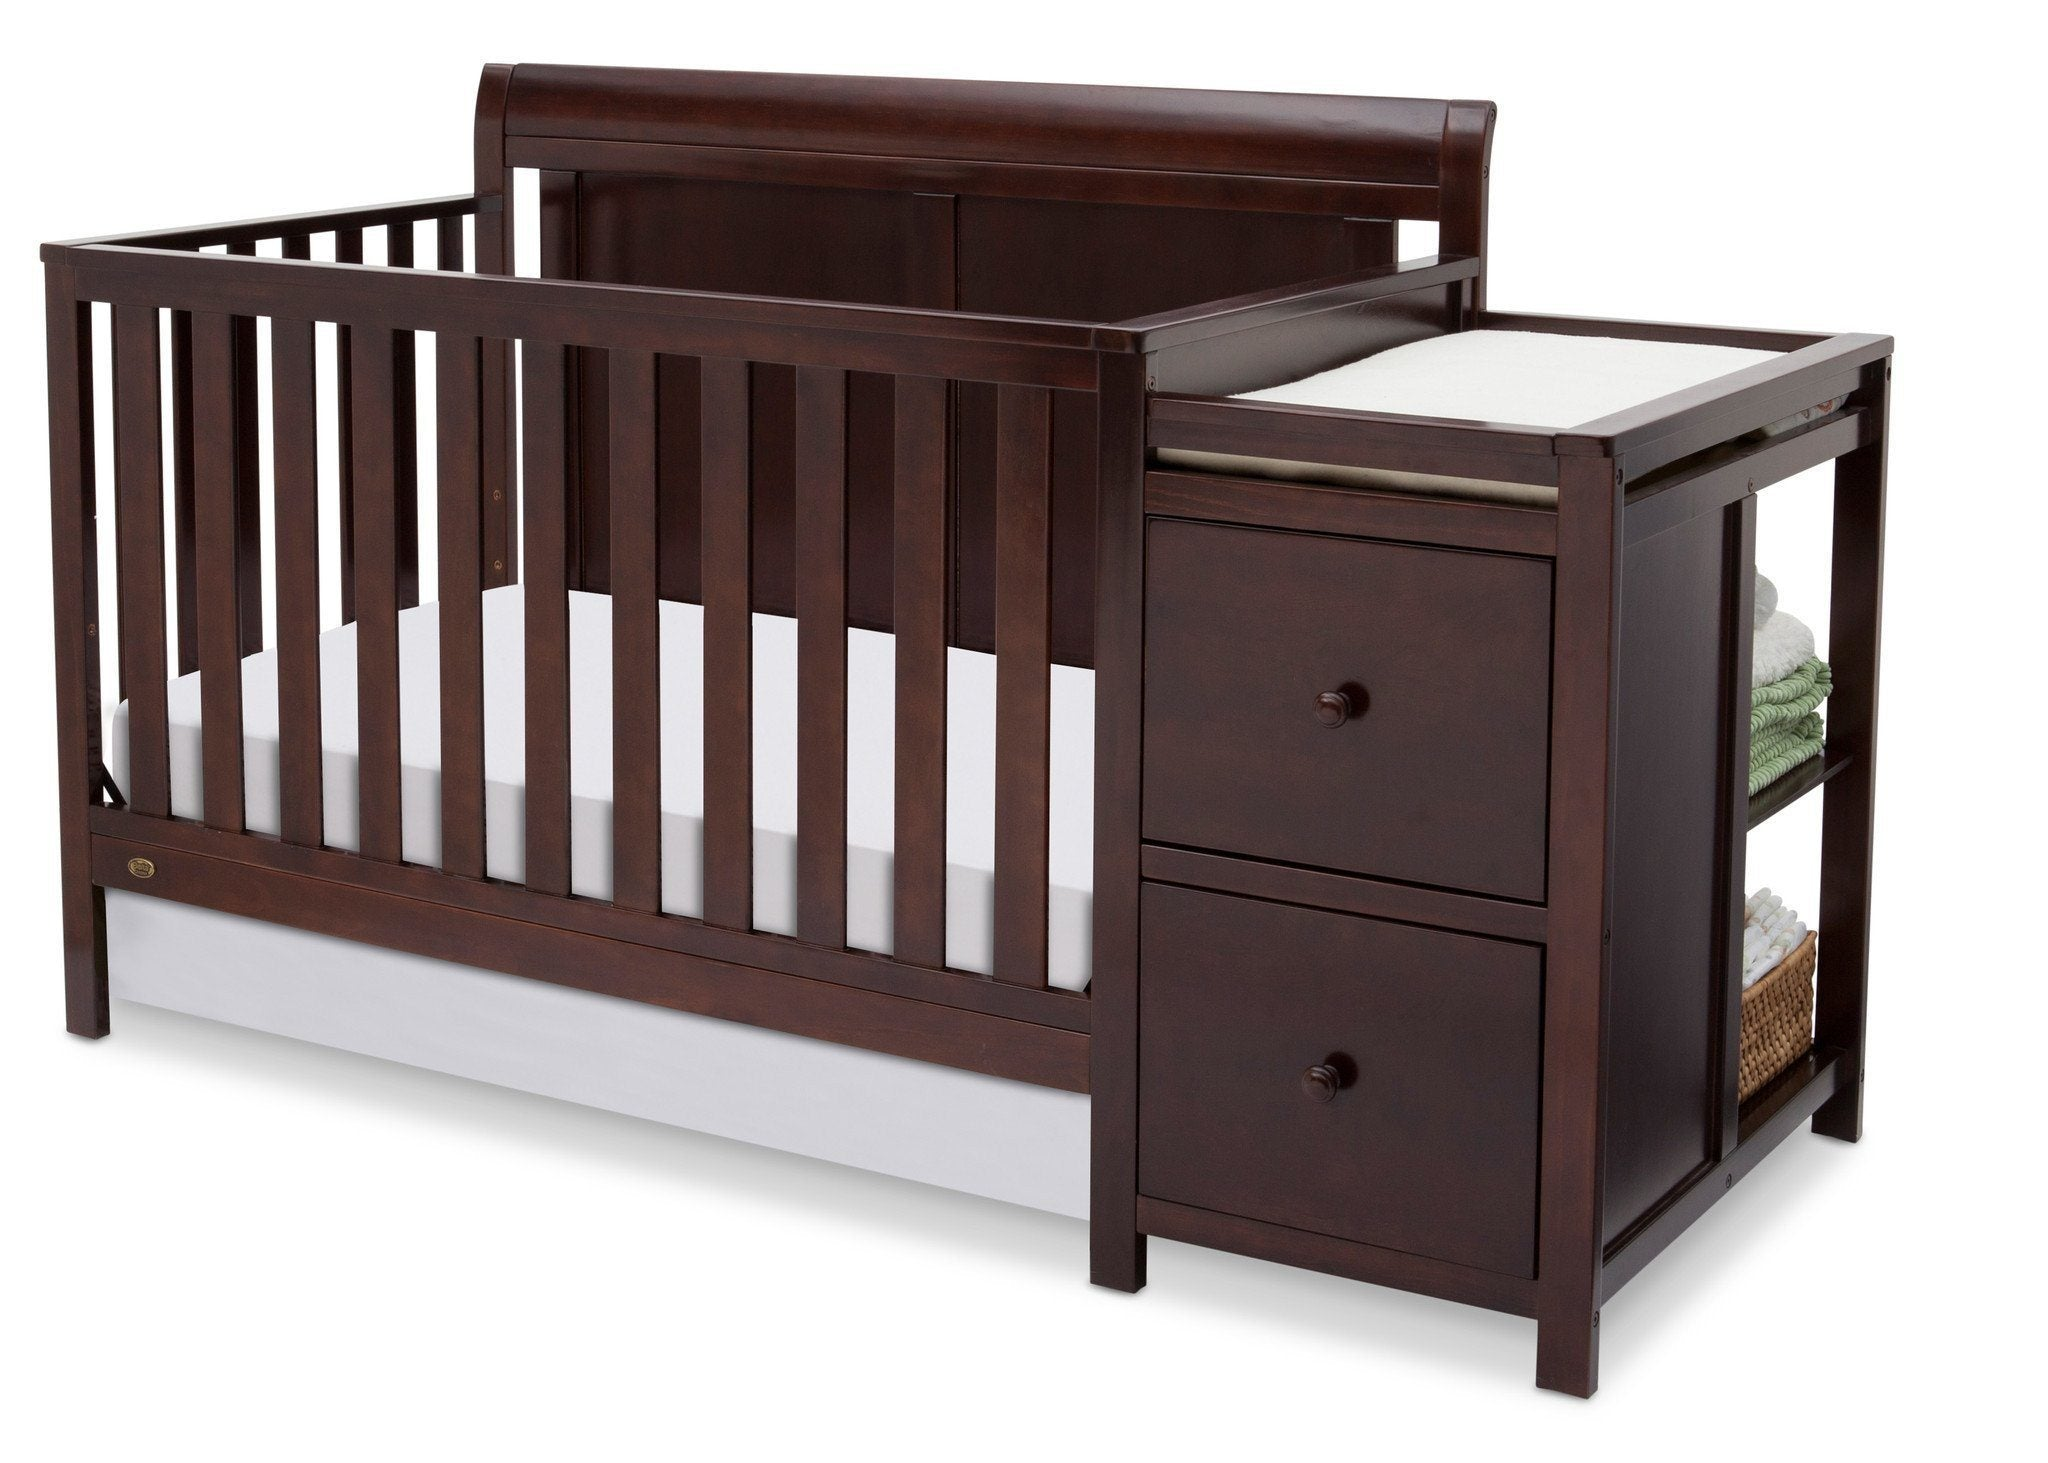 luxury sturdy bennington toddler cribs wood of featuring children convertible rails construction the delta curved for bed crib